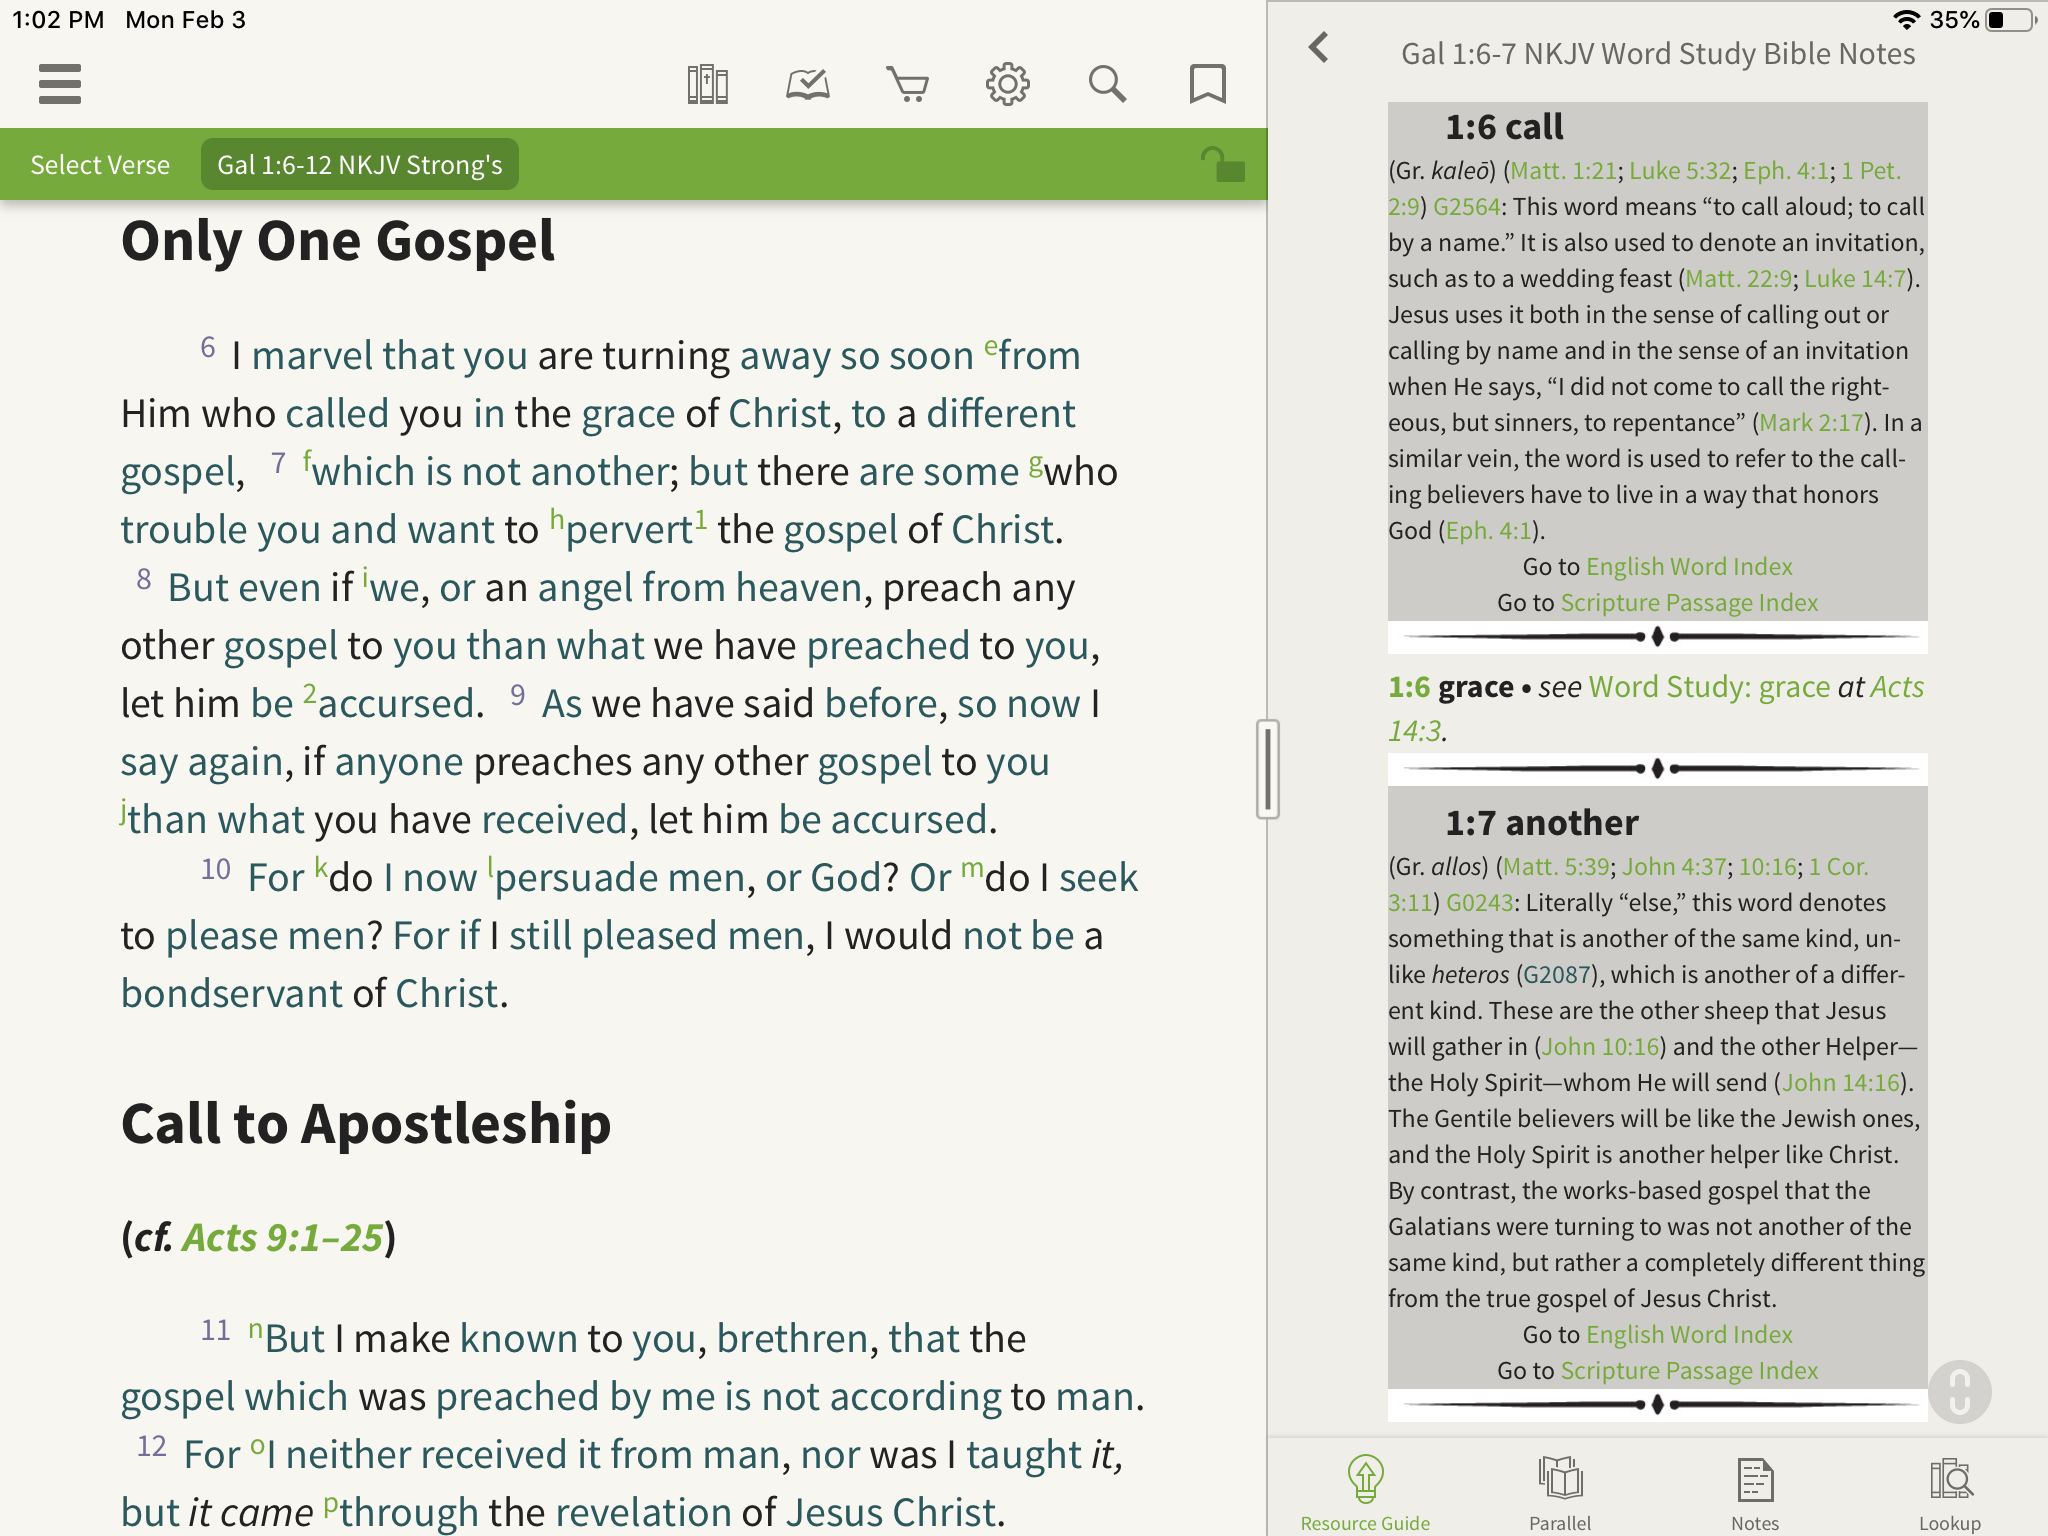 Word Study Bible notes